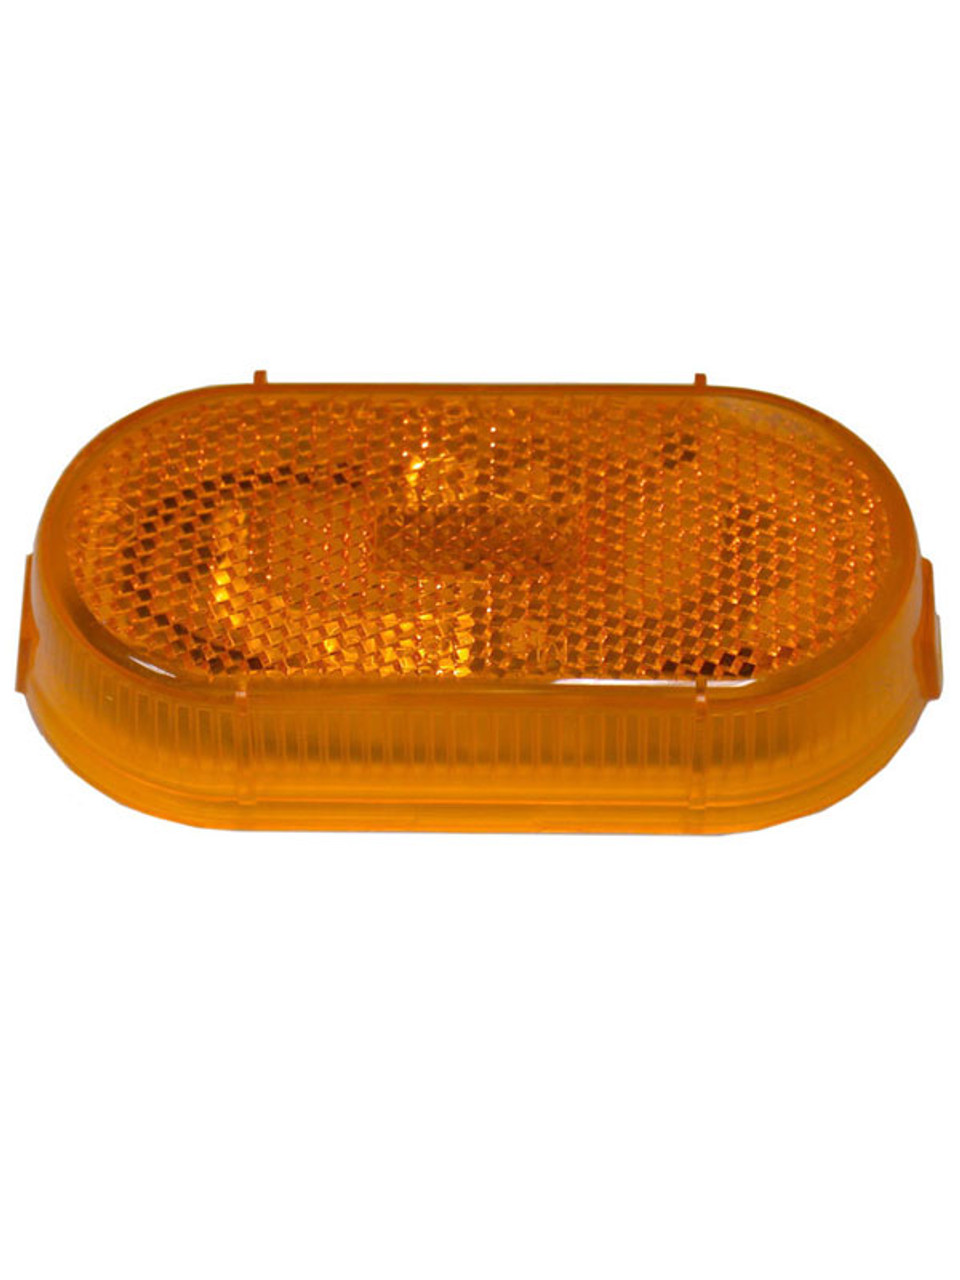 108-15A --- Peterson Replacement Amber Oblong Lens with Reflector